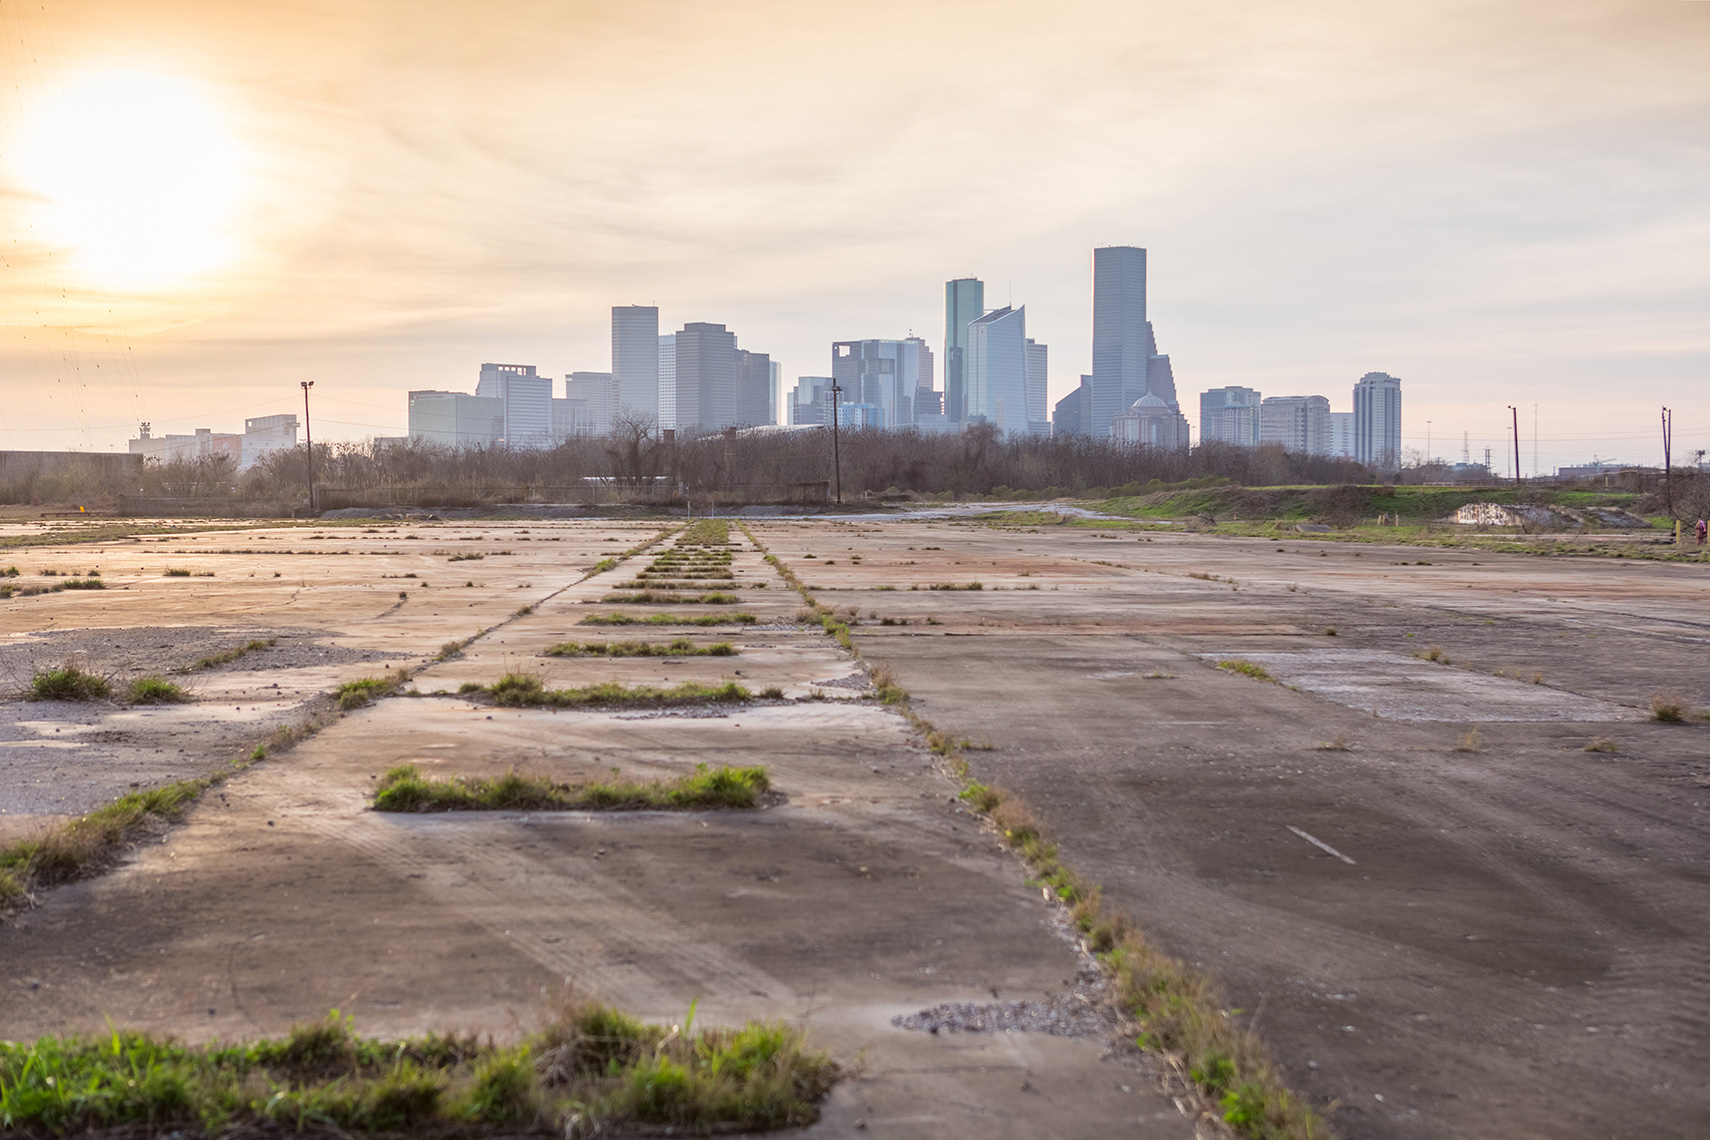 the apocalyptic landscape of Houston Texas during covid 19 pandemic while social distancing by an editorial photographer